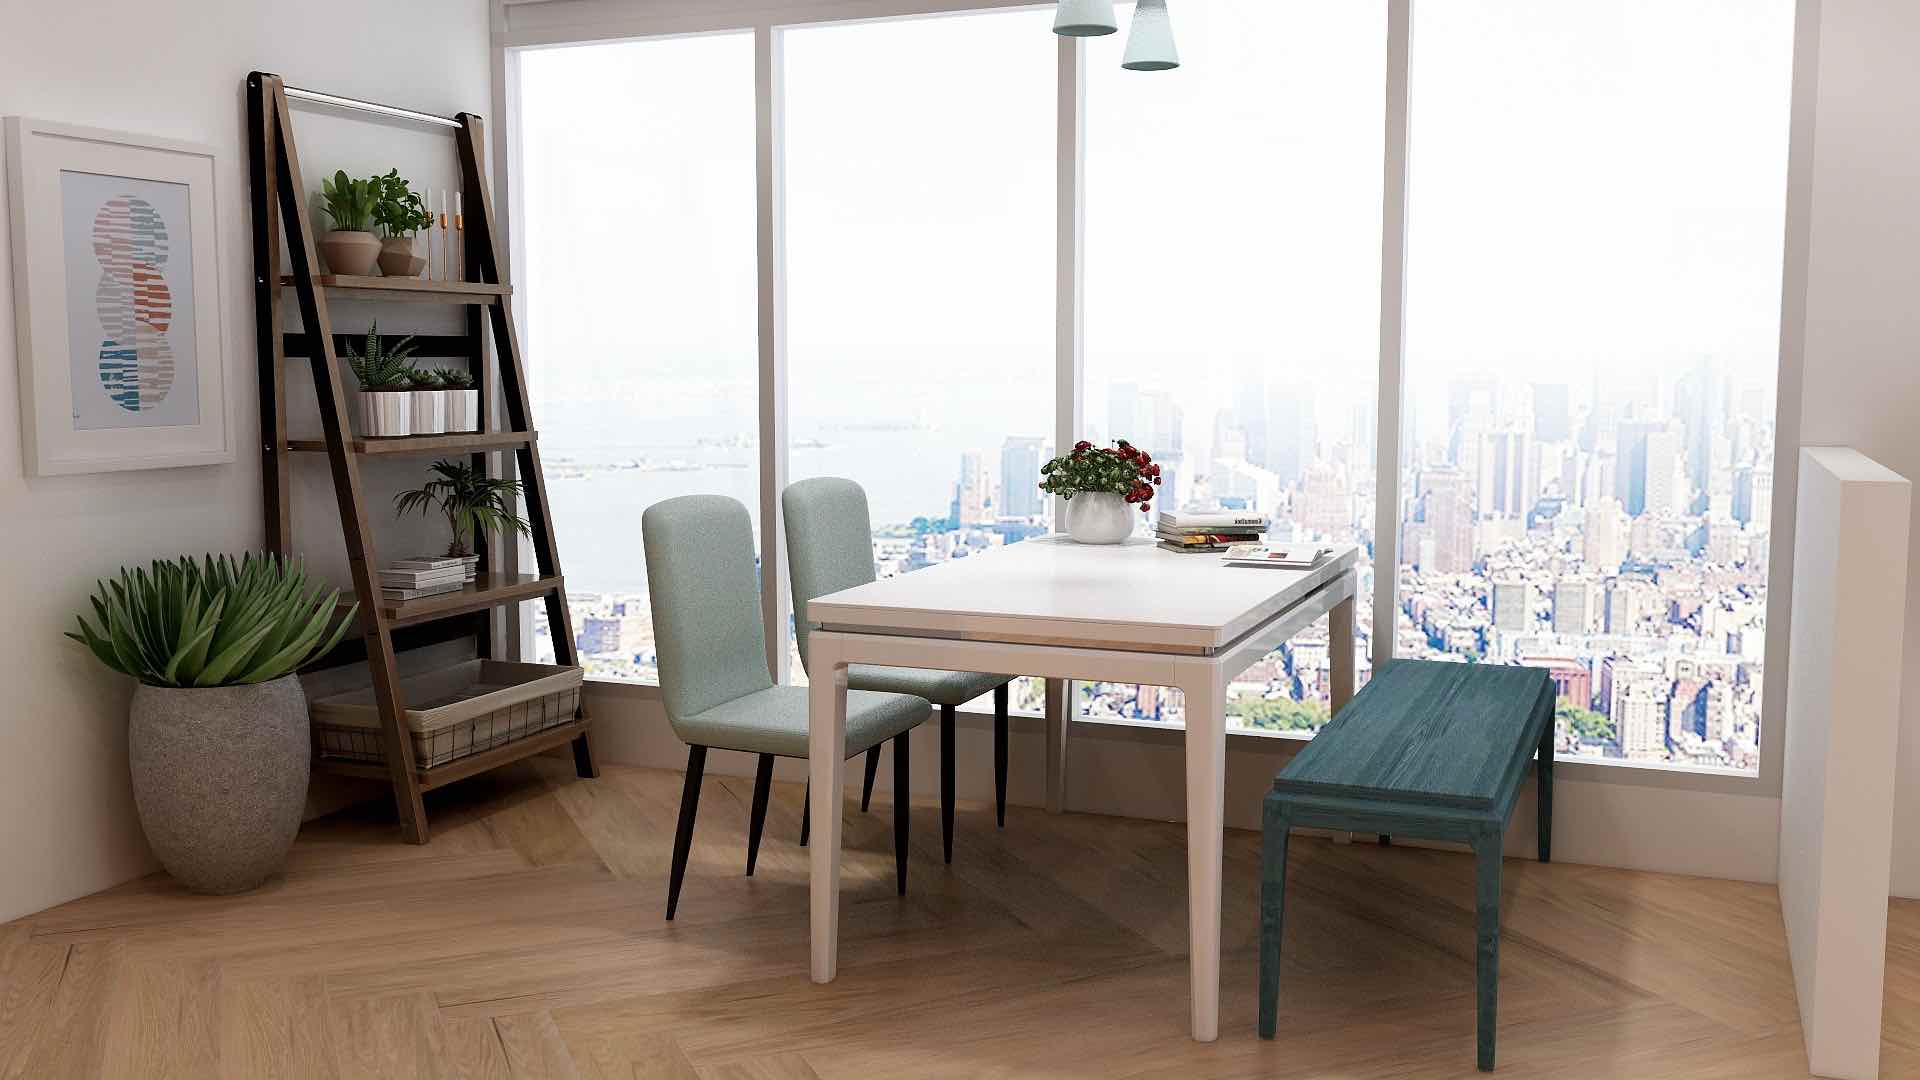 White dining table with blue chairs and plant decor beside a large window